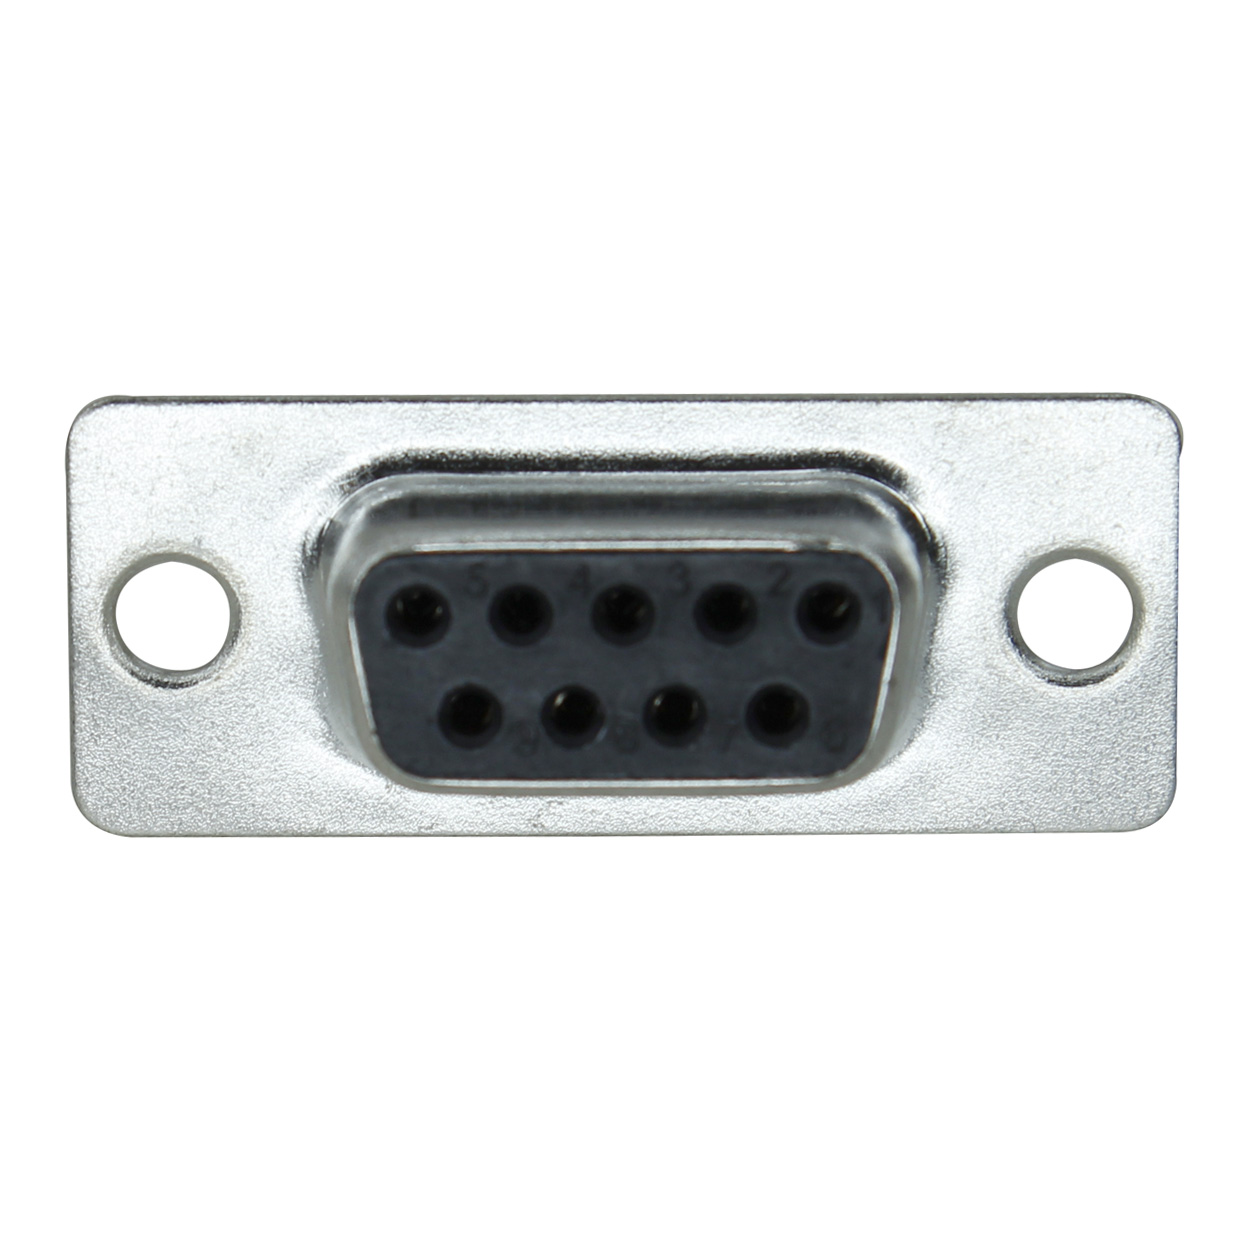 Solder Cup Connector Db9 Female Pi Manufacturing